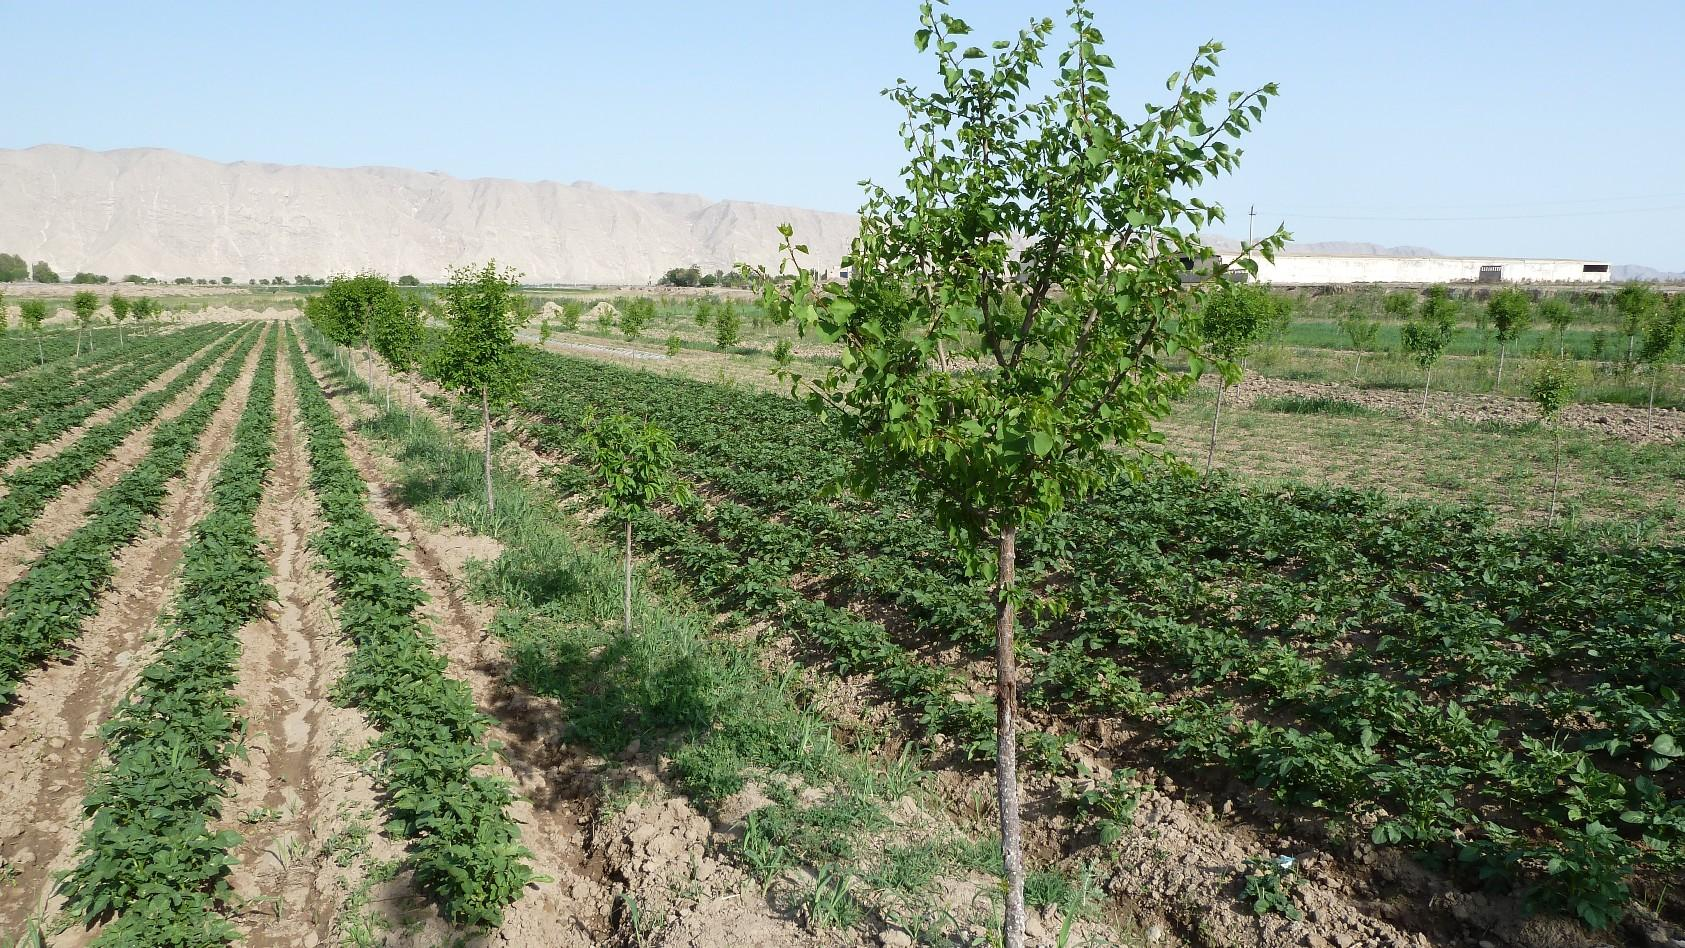 Agroforestry plot on formerly denuded land in a highly arid environment